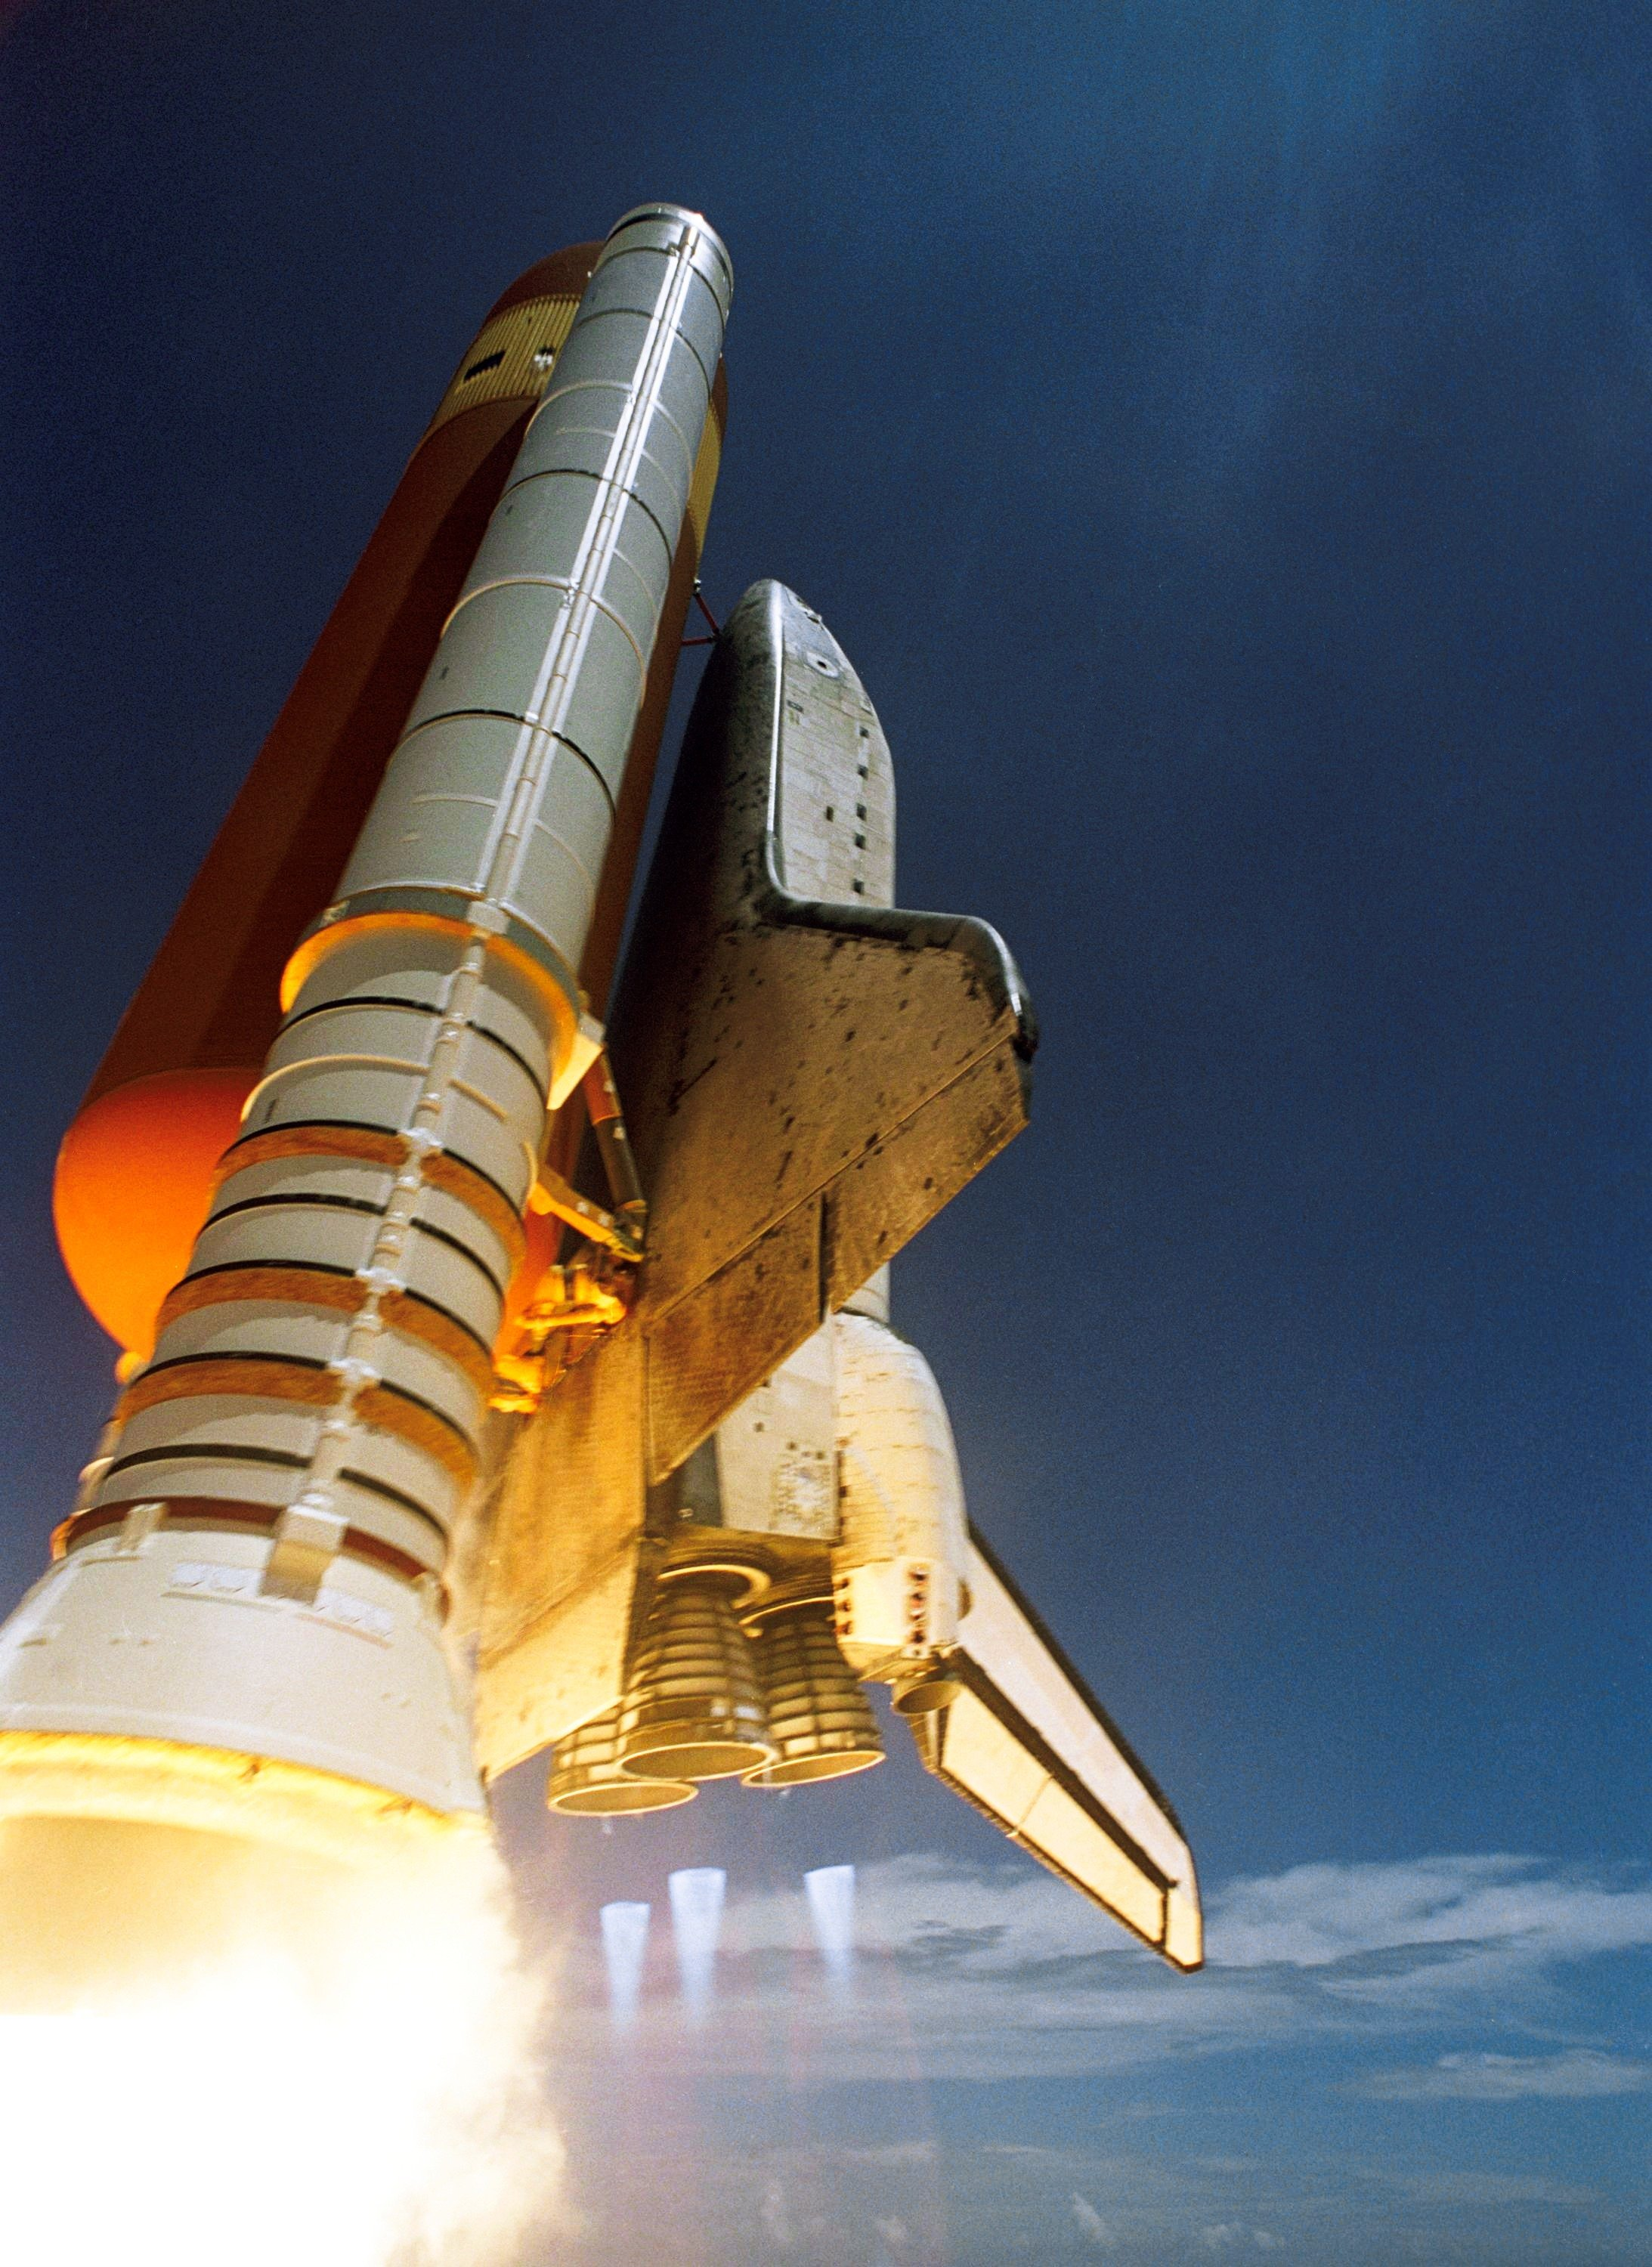 Commercial Vehicle Definition >> White Spaceship Blast Off during Daytime · Free Stock Photo